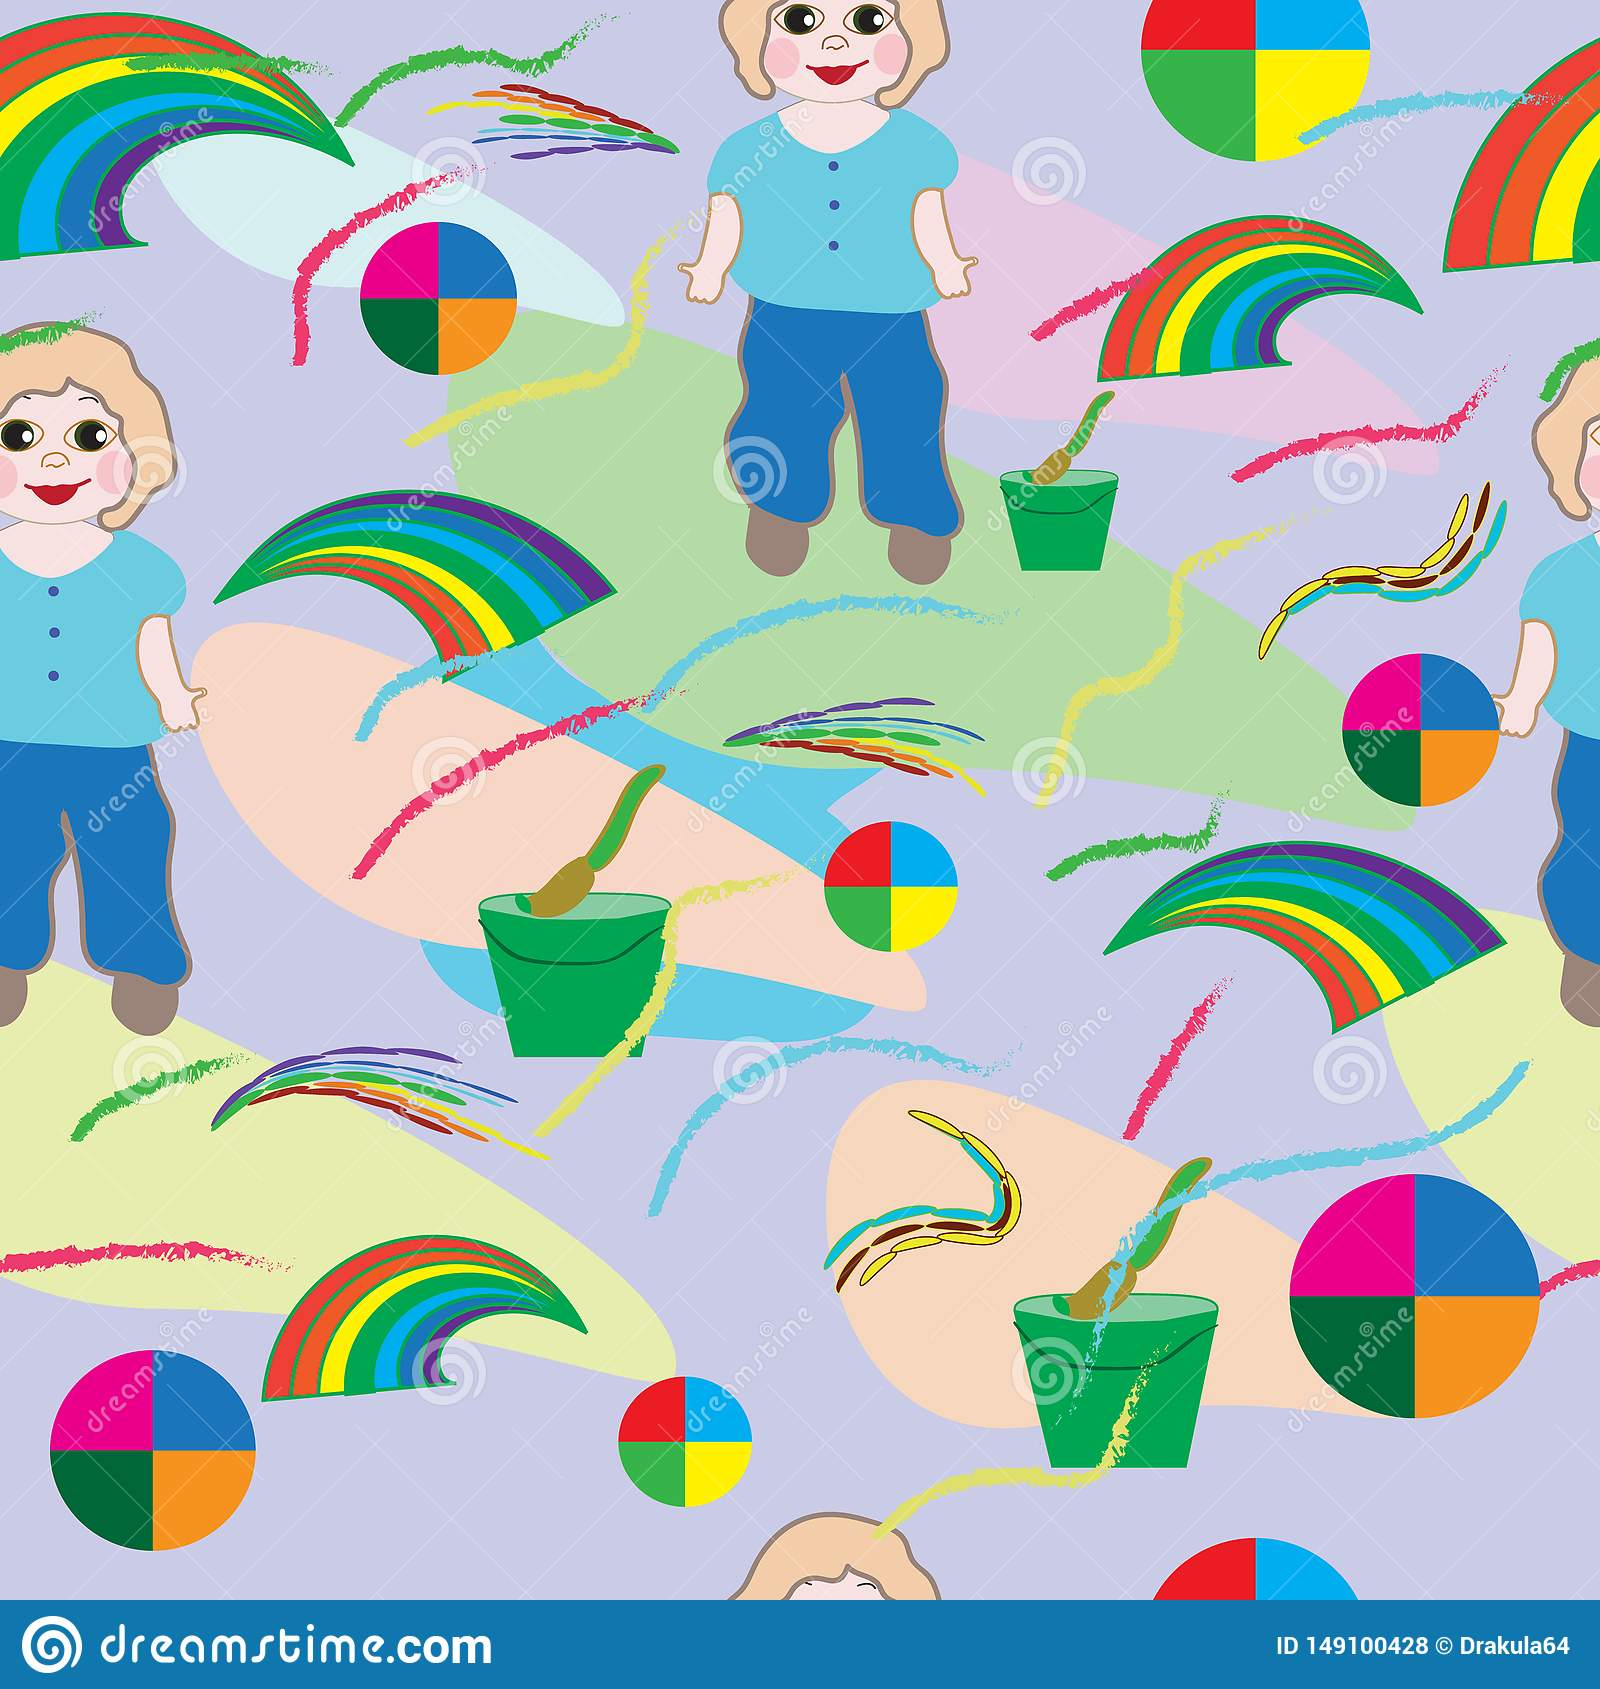 Seamless-baby-background-with-baby,-brush,-rainbow-and-flowers